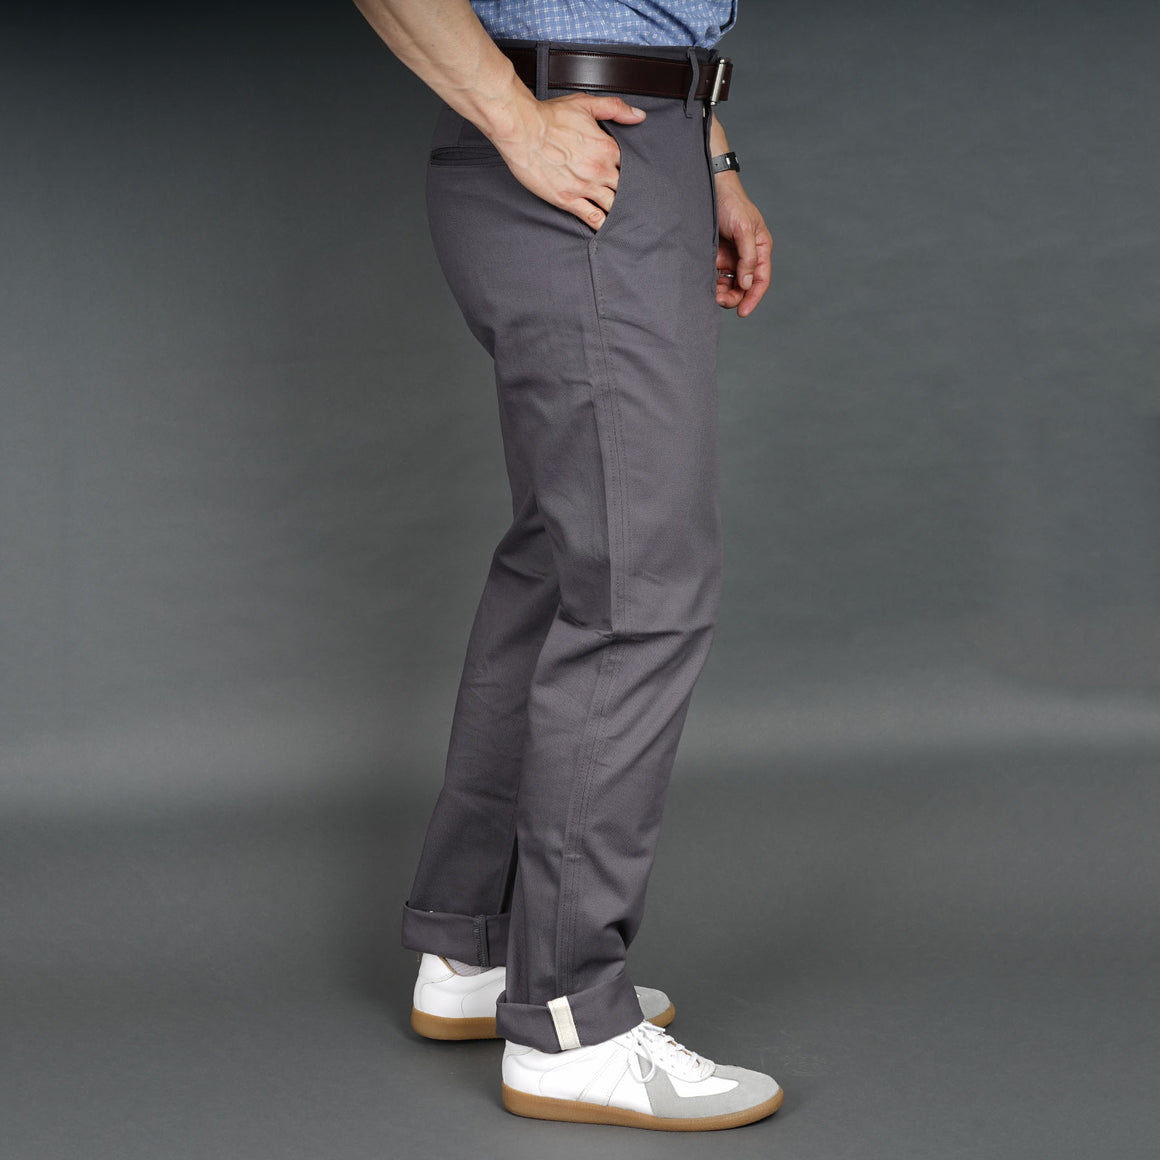 Sandow Athletic Chino Graphite Cramerton Cloth